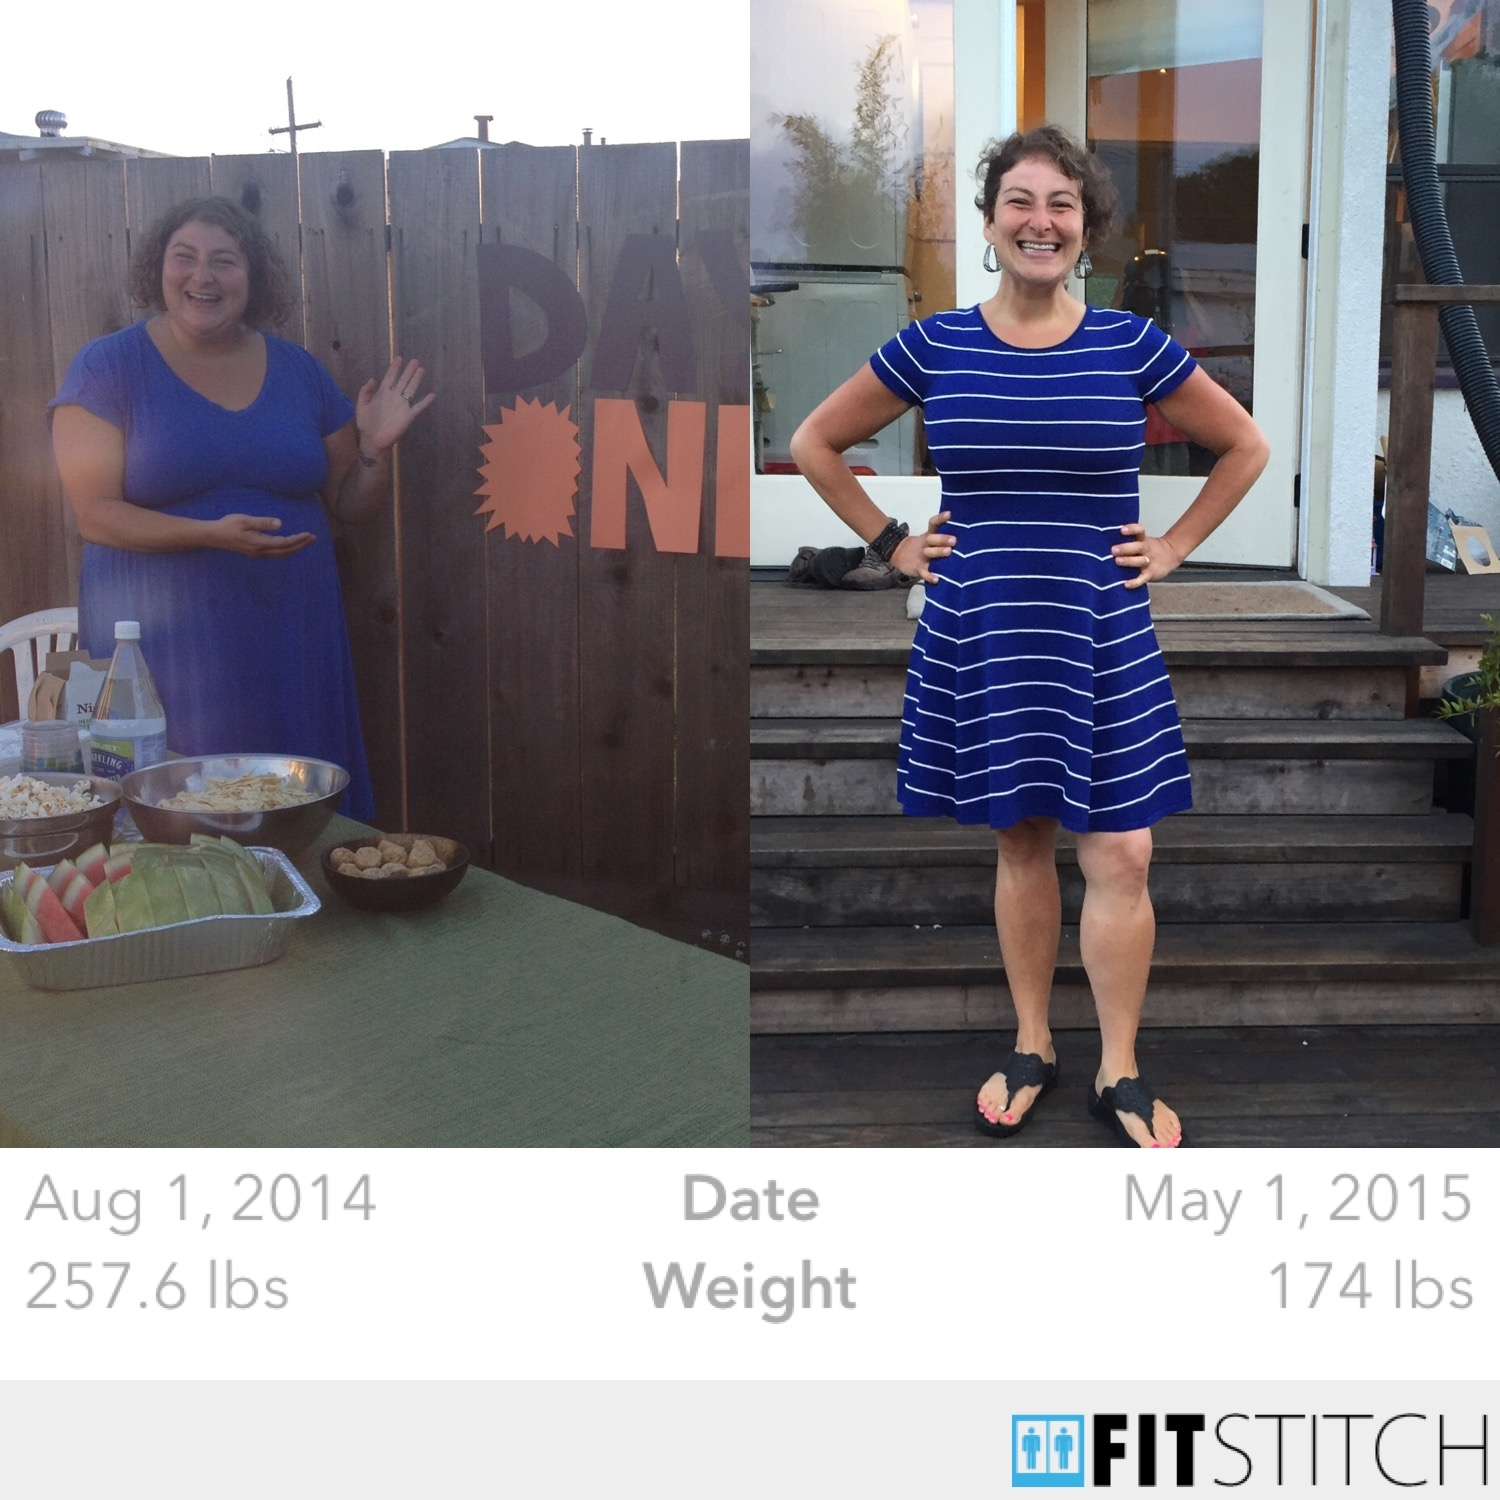 154 Pounds Lost: Sara's Weight Loss Journey To Loving Herself